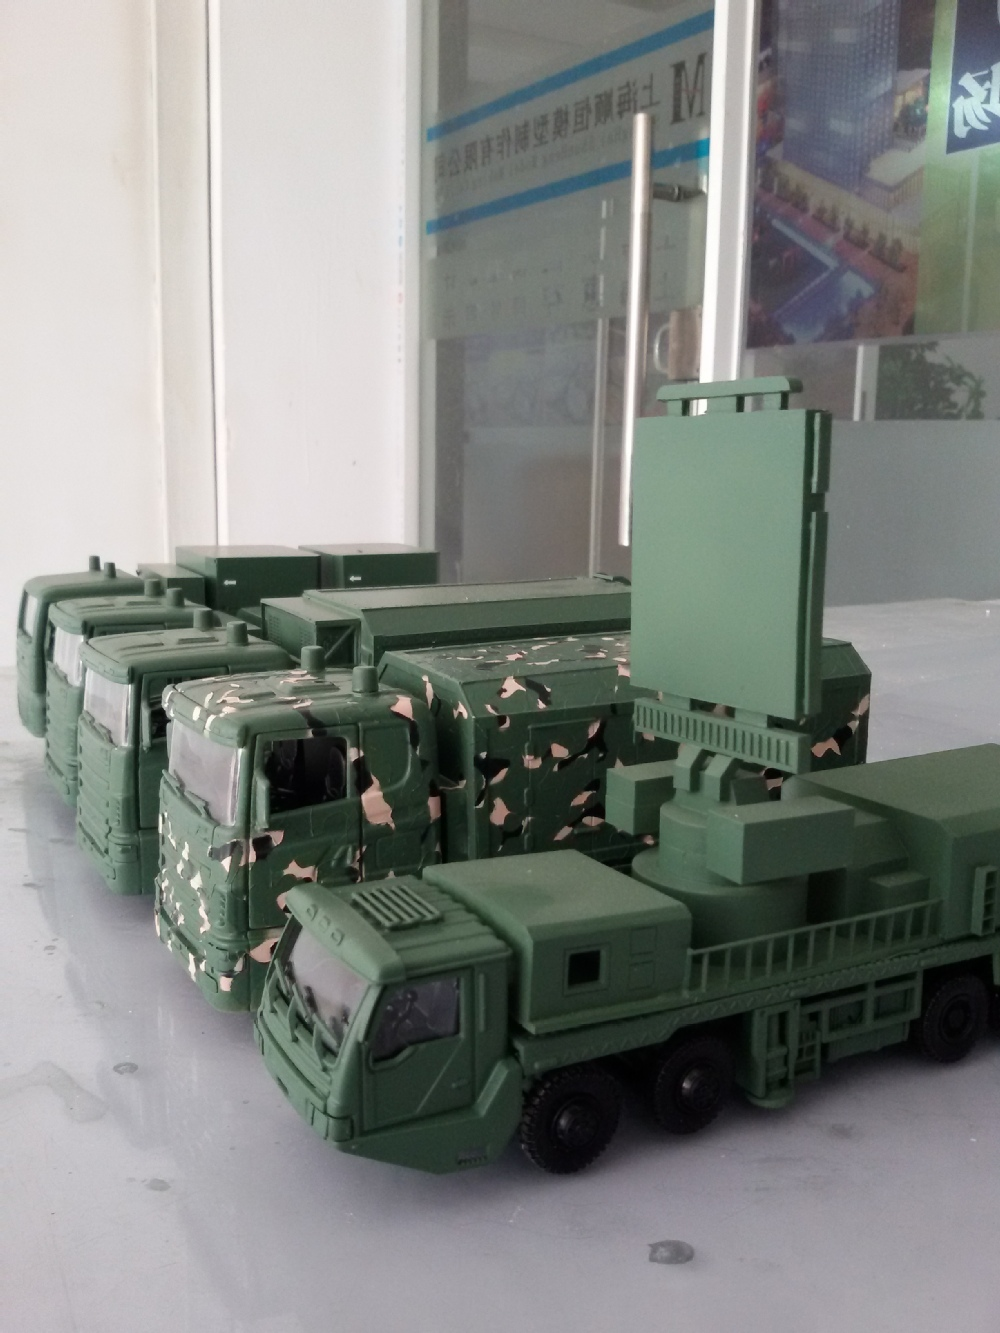 Architectural model making materials 1 50 model humvees for Waste material model making